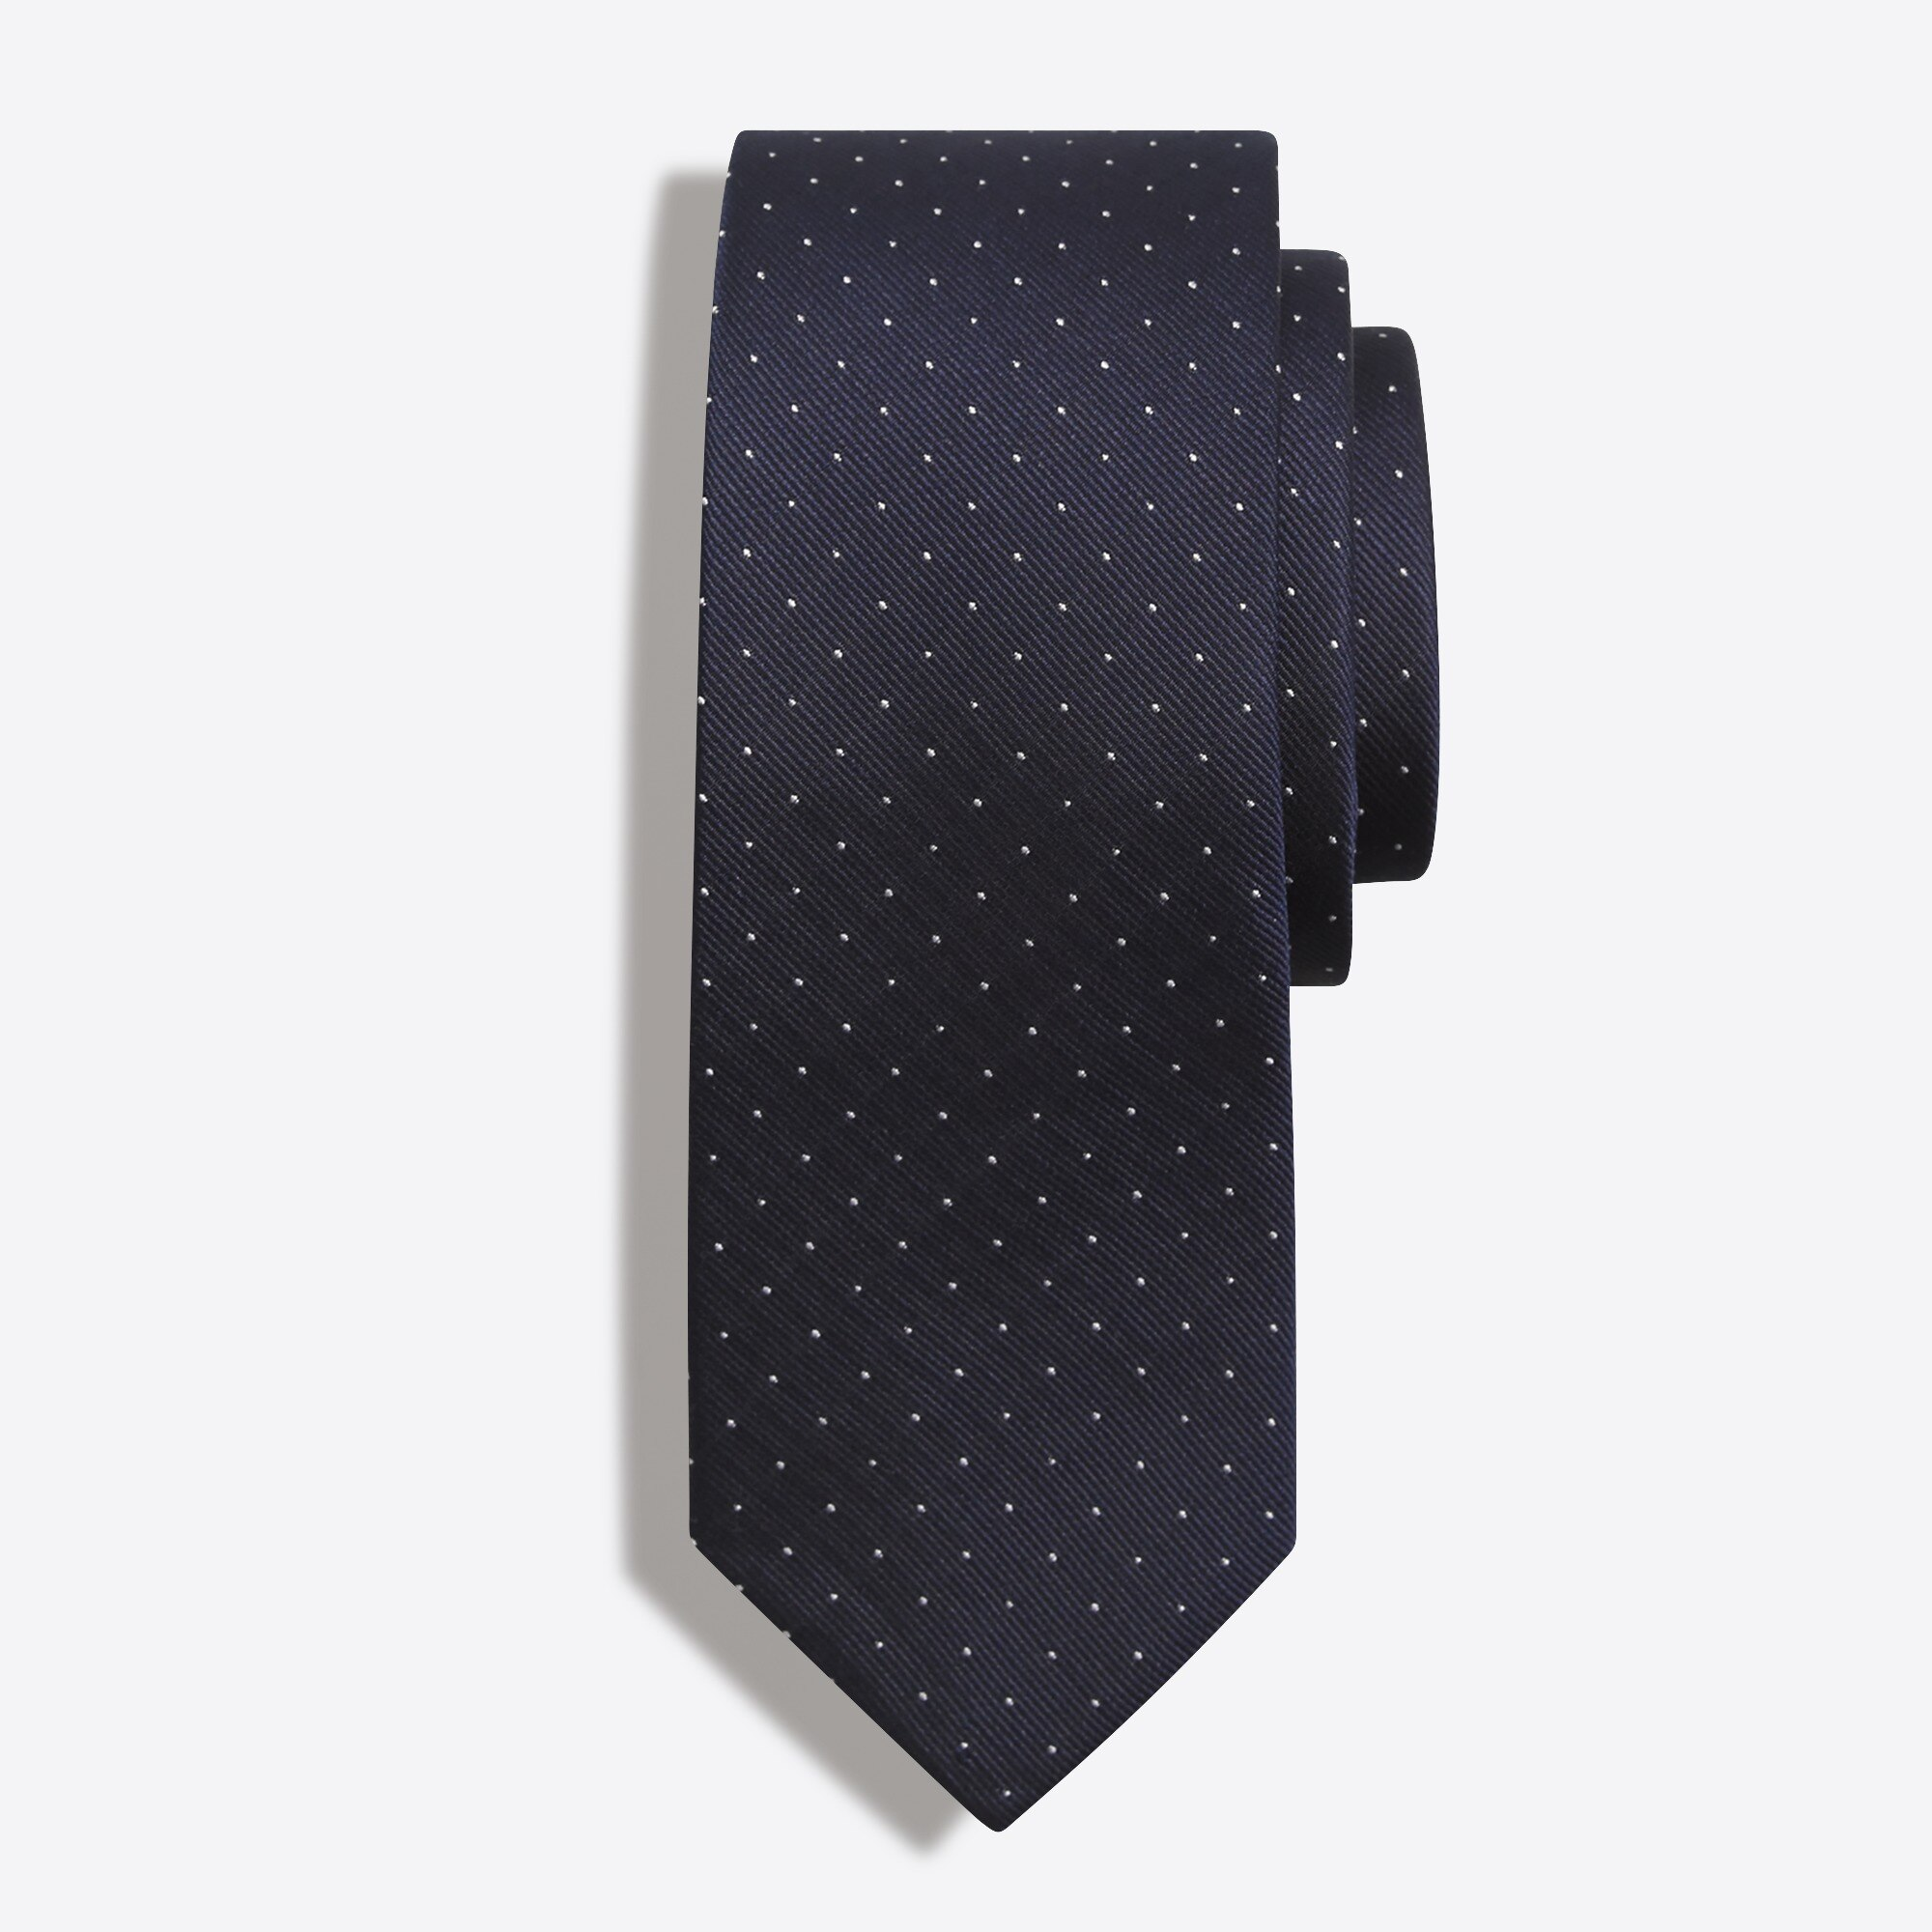 Image 1 for Silk pindot tie